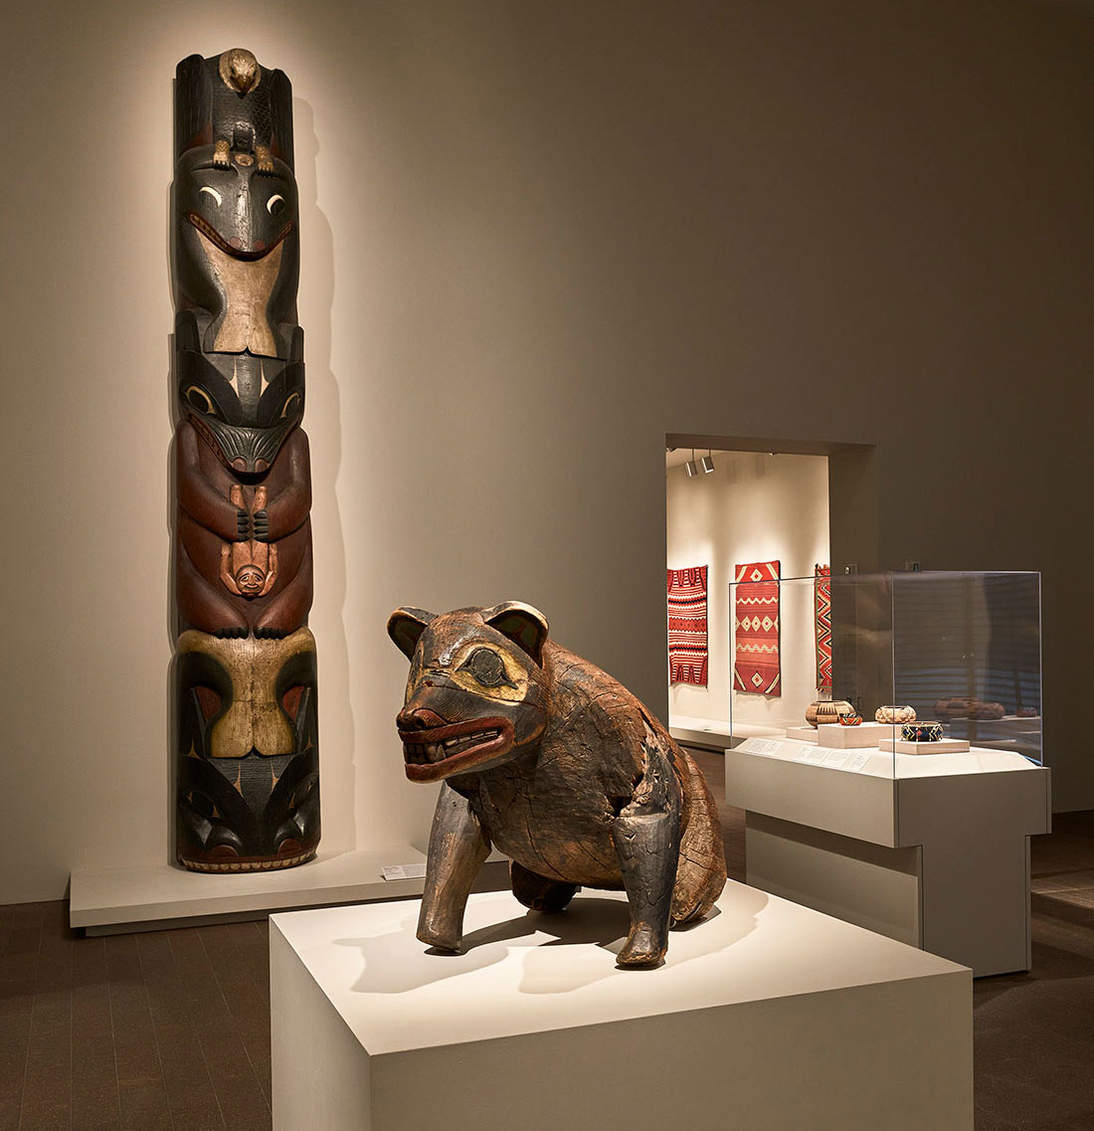 Installation view of Native Artists of Western North America showing totem pole and bear effigy